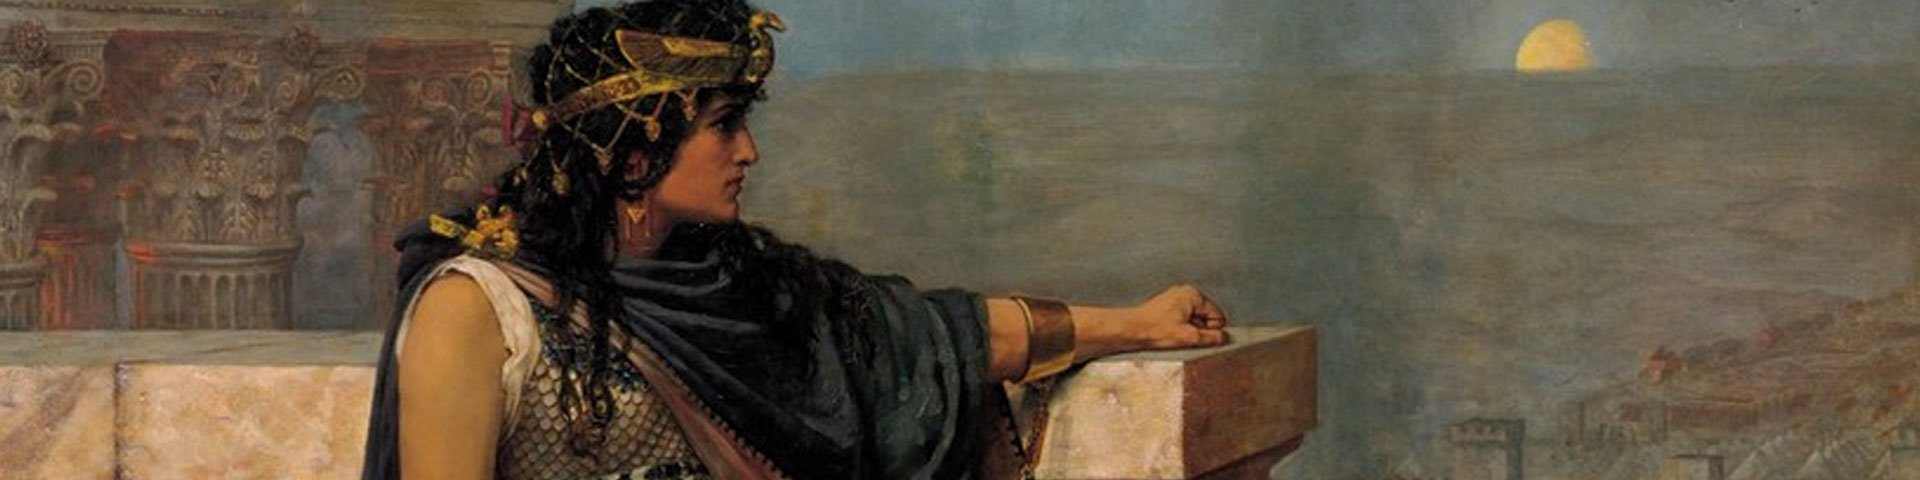 Zenobia of Palmyra, creator of an Eastern empire